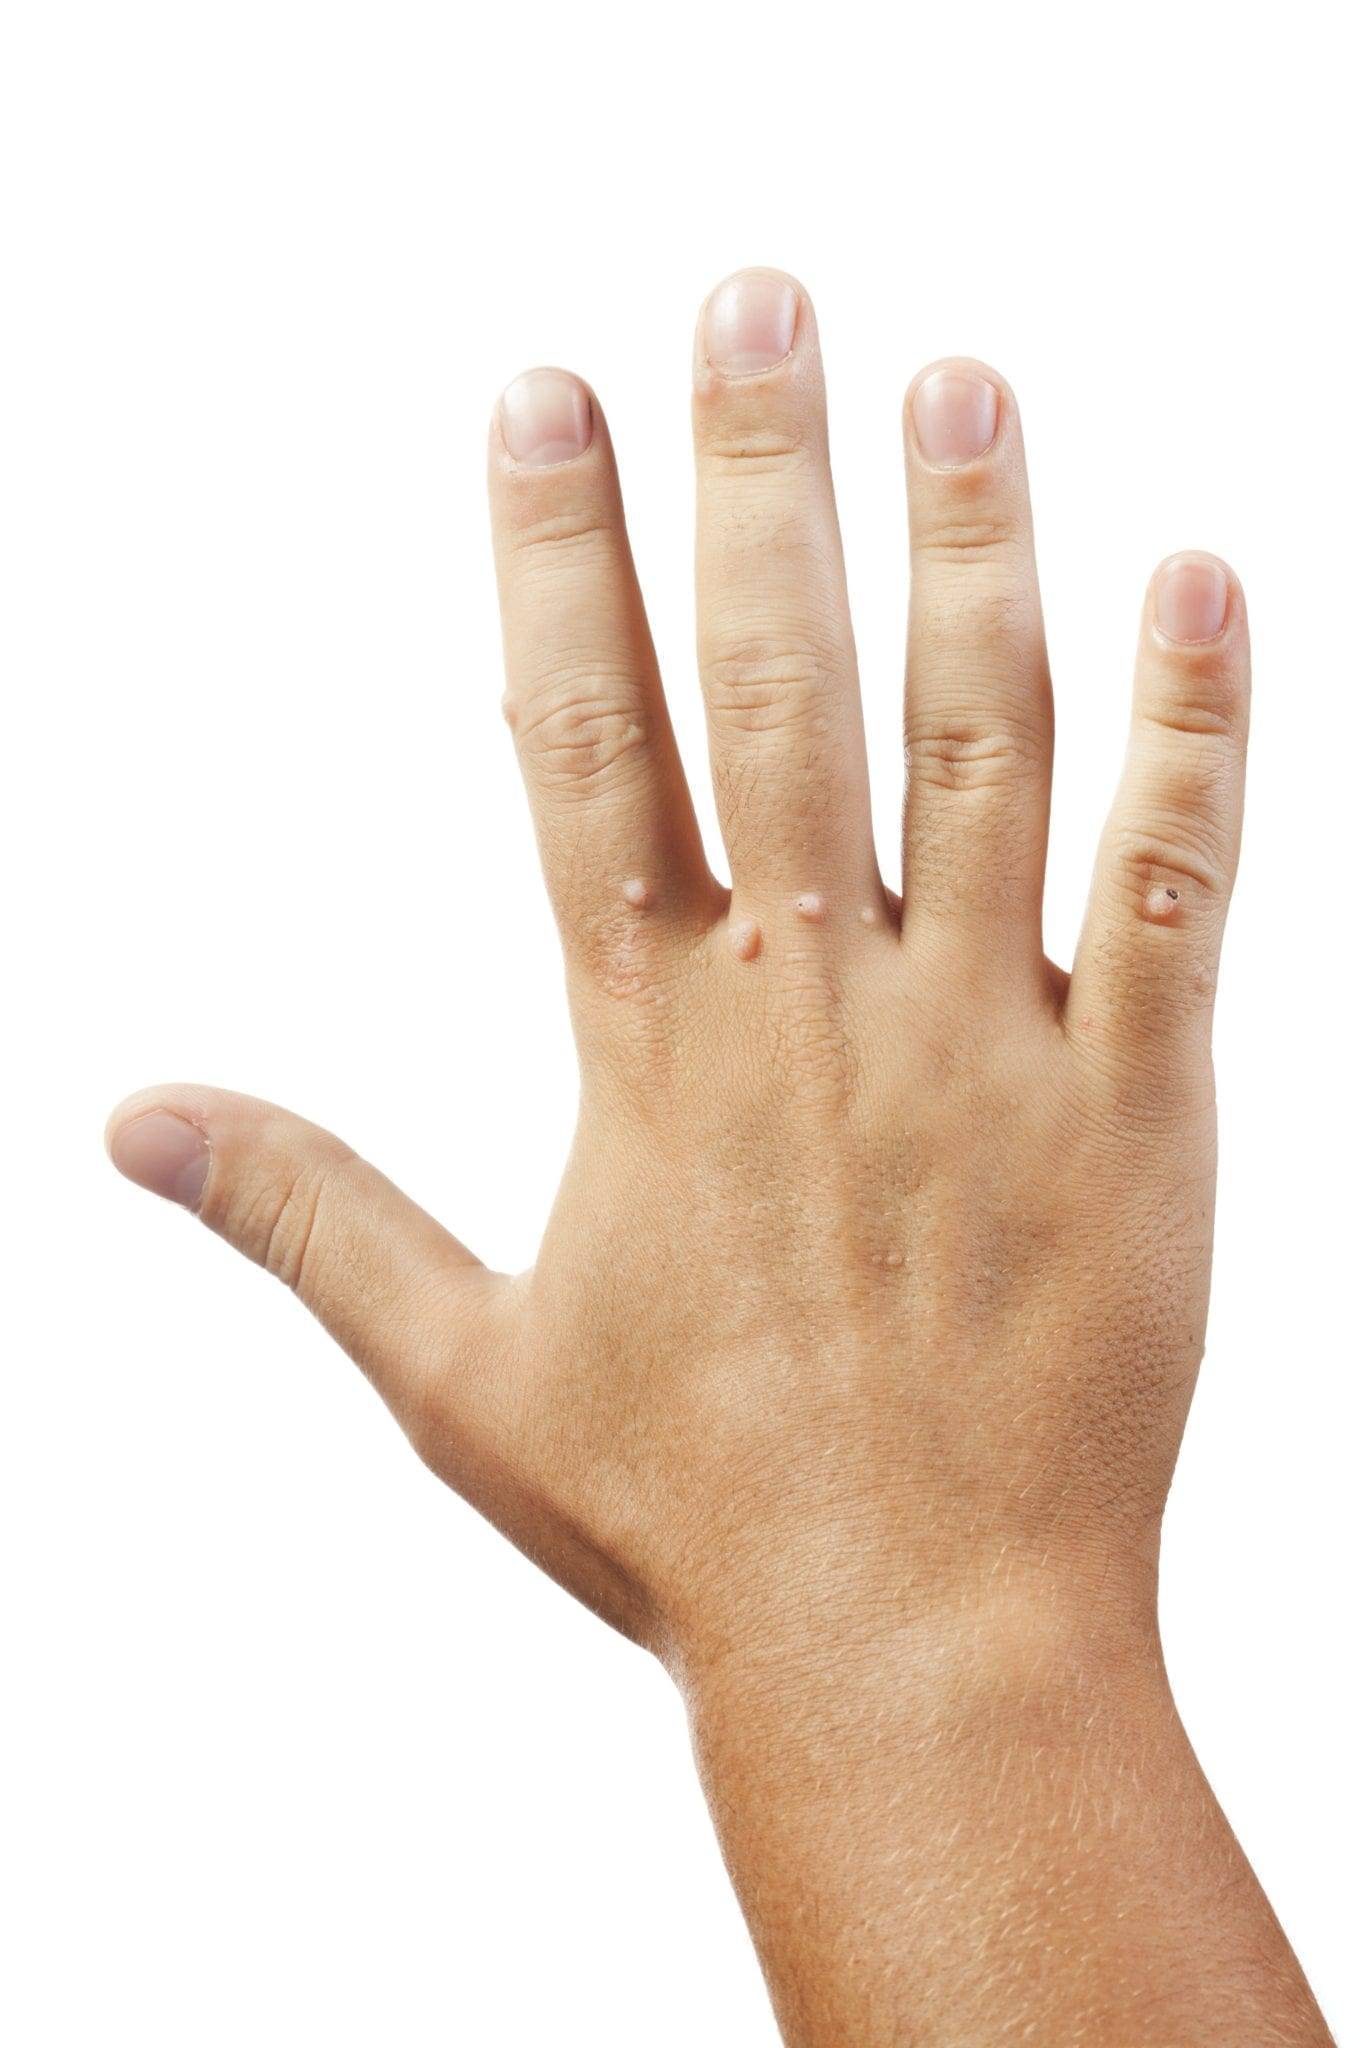 warts on hands while pregnant cancer la san dupa alaptare